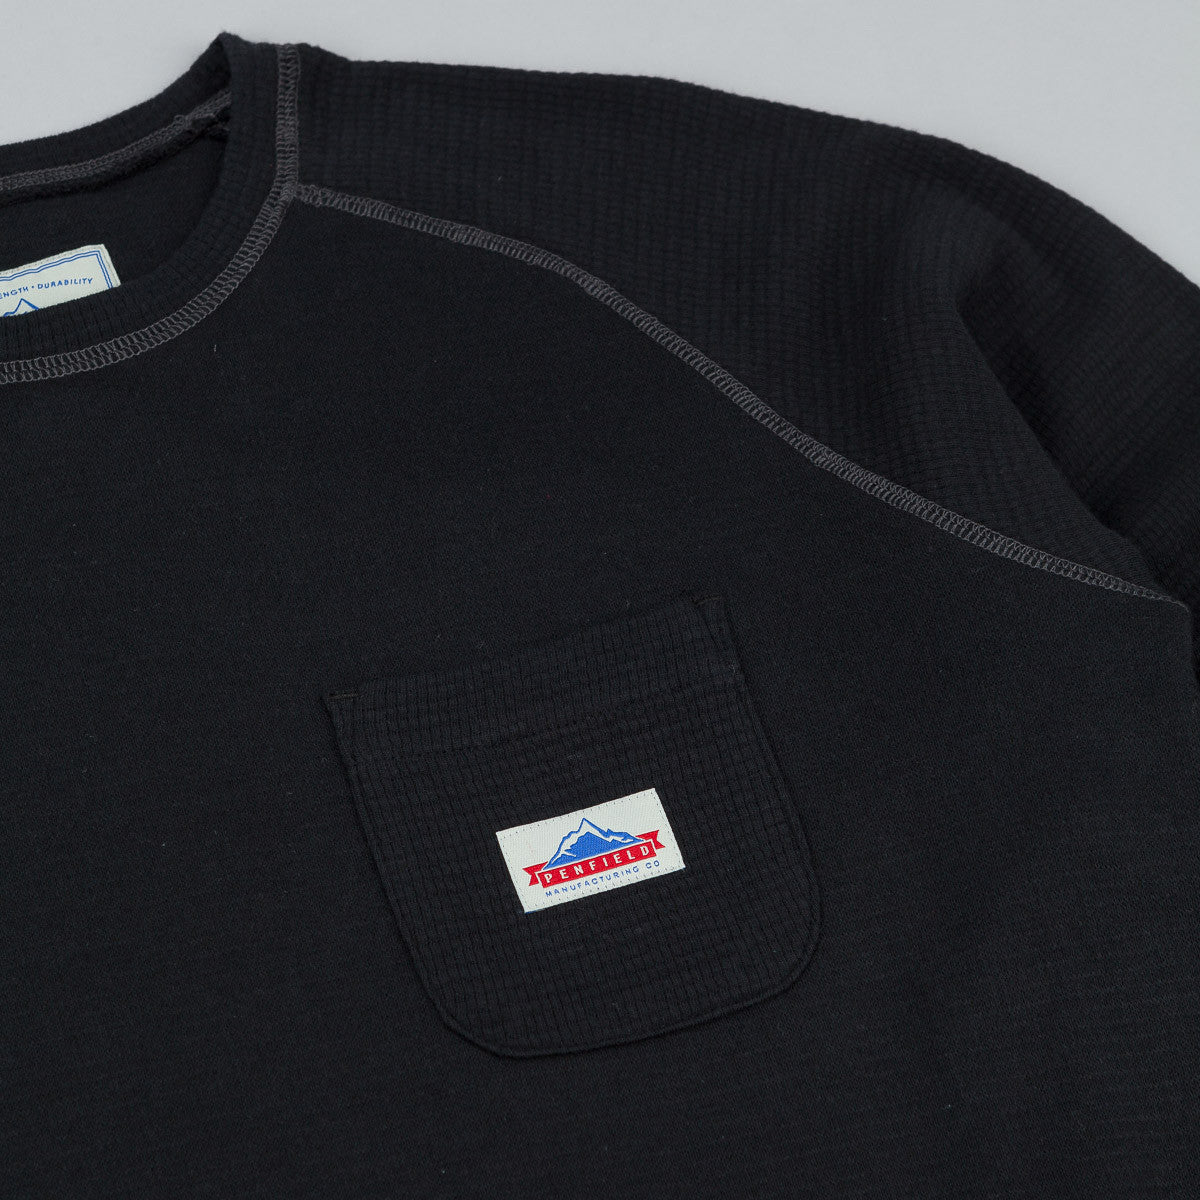 Penfield Easton Long Sleeve T-Shirt - Black